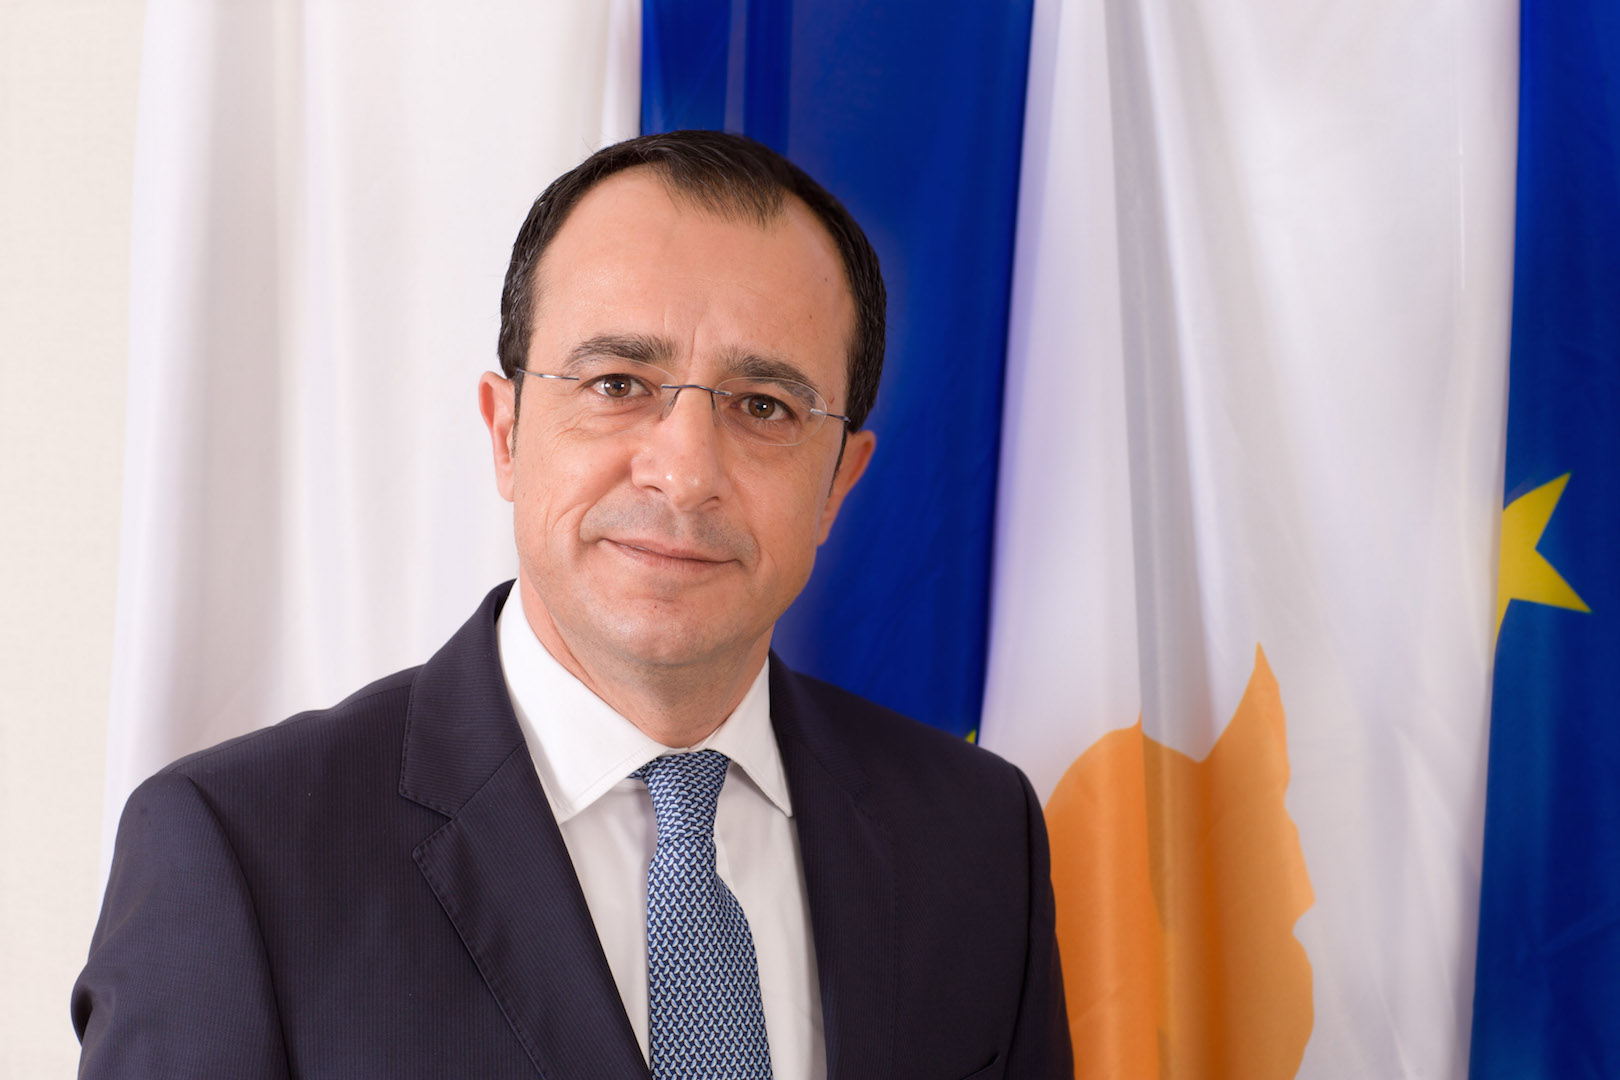 Christodoulides: We are ready to continue the effort in the Cyprus issue as soon as the conditions allow